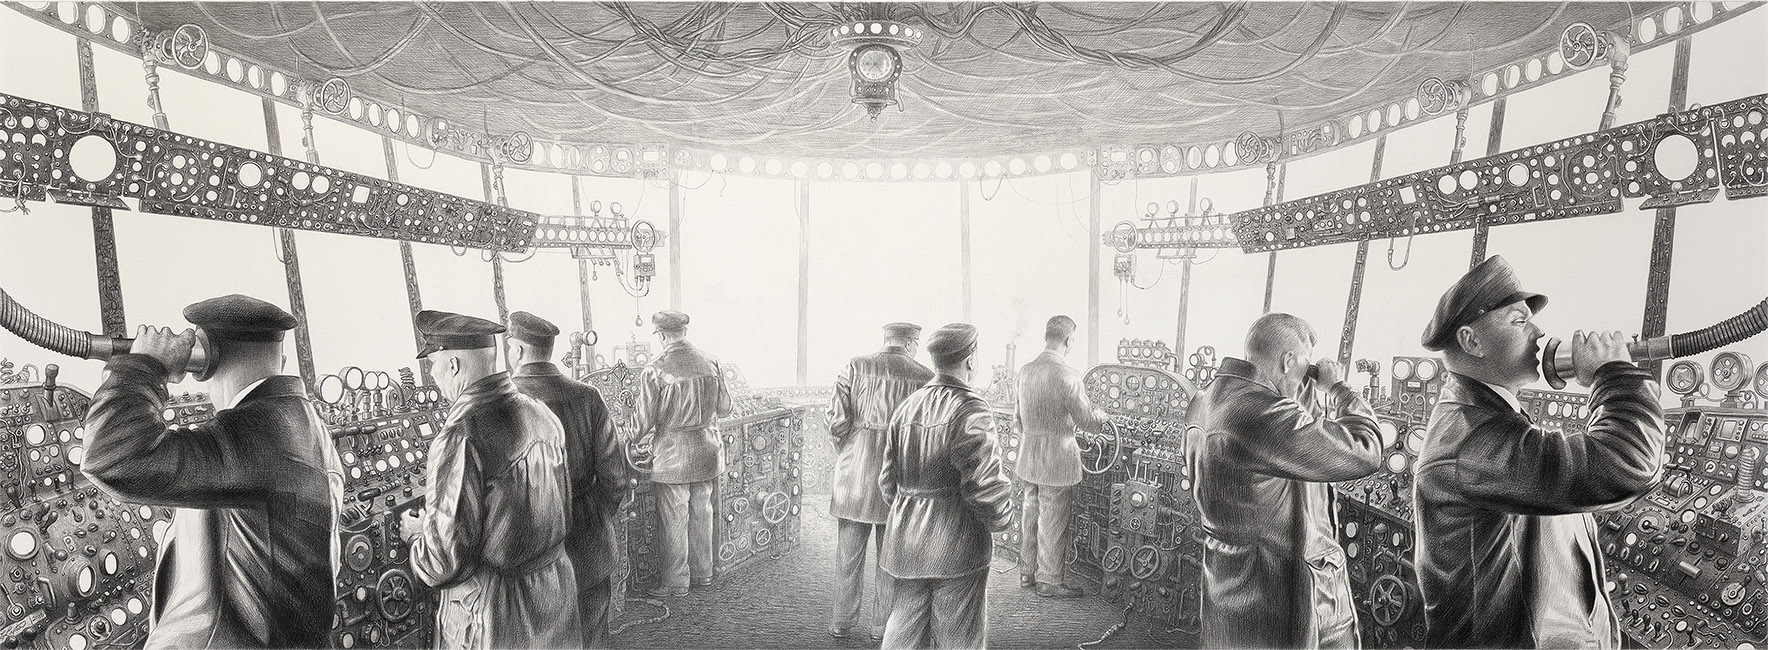 Laurie Lipton - THE ILLUSION OF CONTROL TOWER charcoal pencil on paper, 143.5 x 363.3 cm